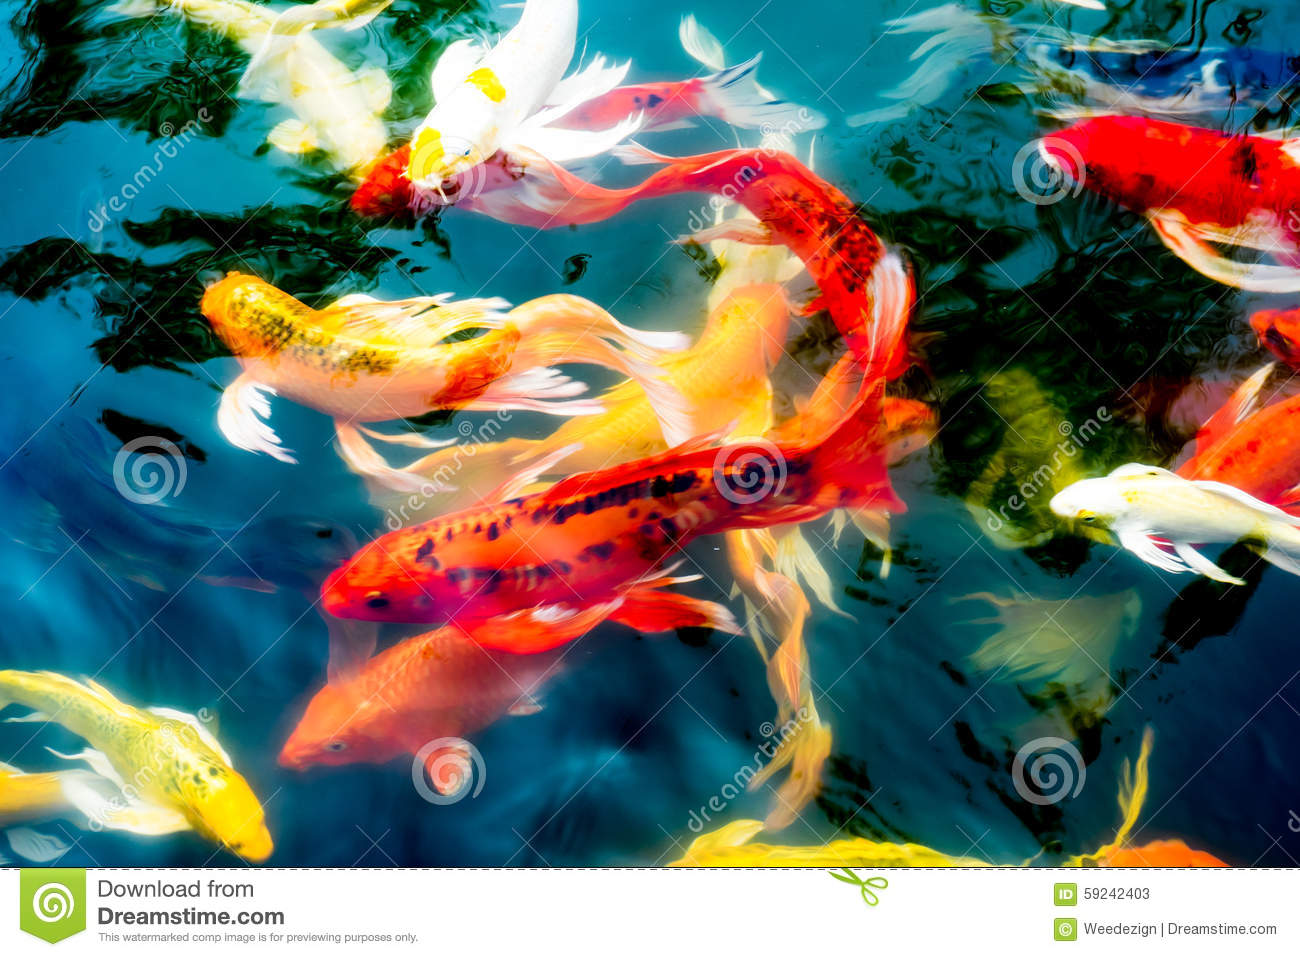 Nature Images 2mb: Koi Fish In Pond,colorful Natural Background Stock Photo